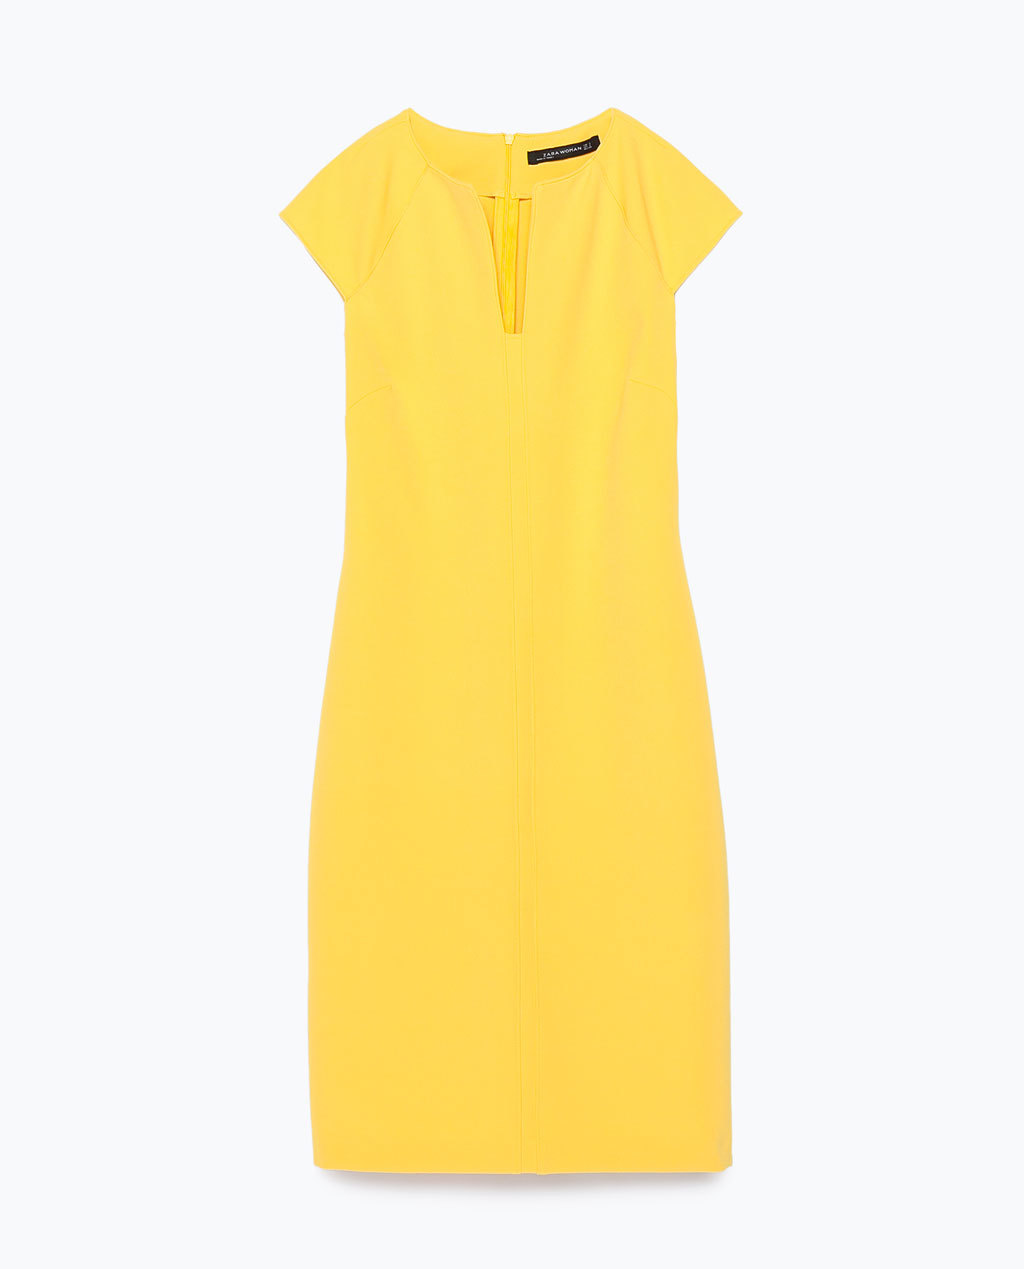 Shift Dress - style: shift; neckline: v-neck; sleeve style: capped; fit: tailored/fitted; pattern: plain; predominant colour: yellow; occasions: casual, creative work; length: just above the knee; fibres: polyester/polyamide - stretch; sleeve length: short sleeve; pattern type: fabric; texture group: other - light to midweight; season: s/s 2015; wardrobe: highlight